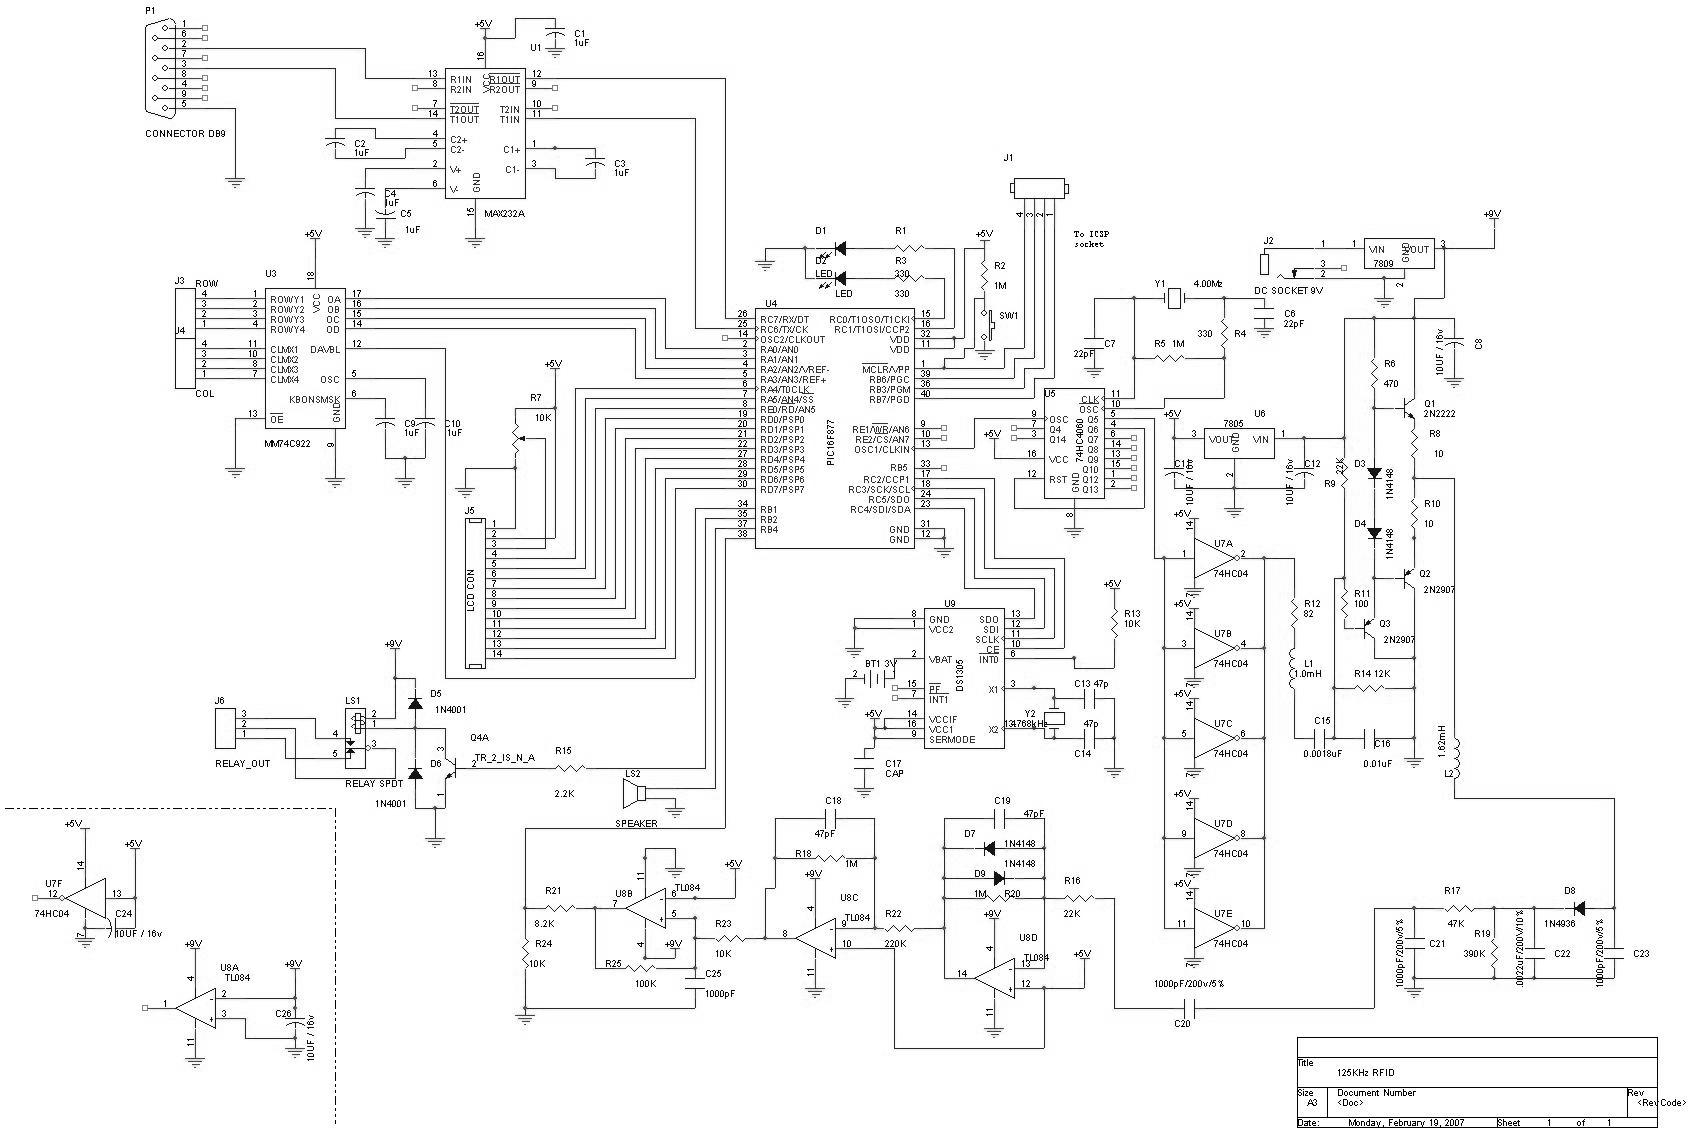 Reverse Engineering PCB Board Wiring Diagram - PCB Reverse ...